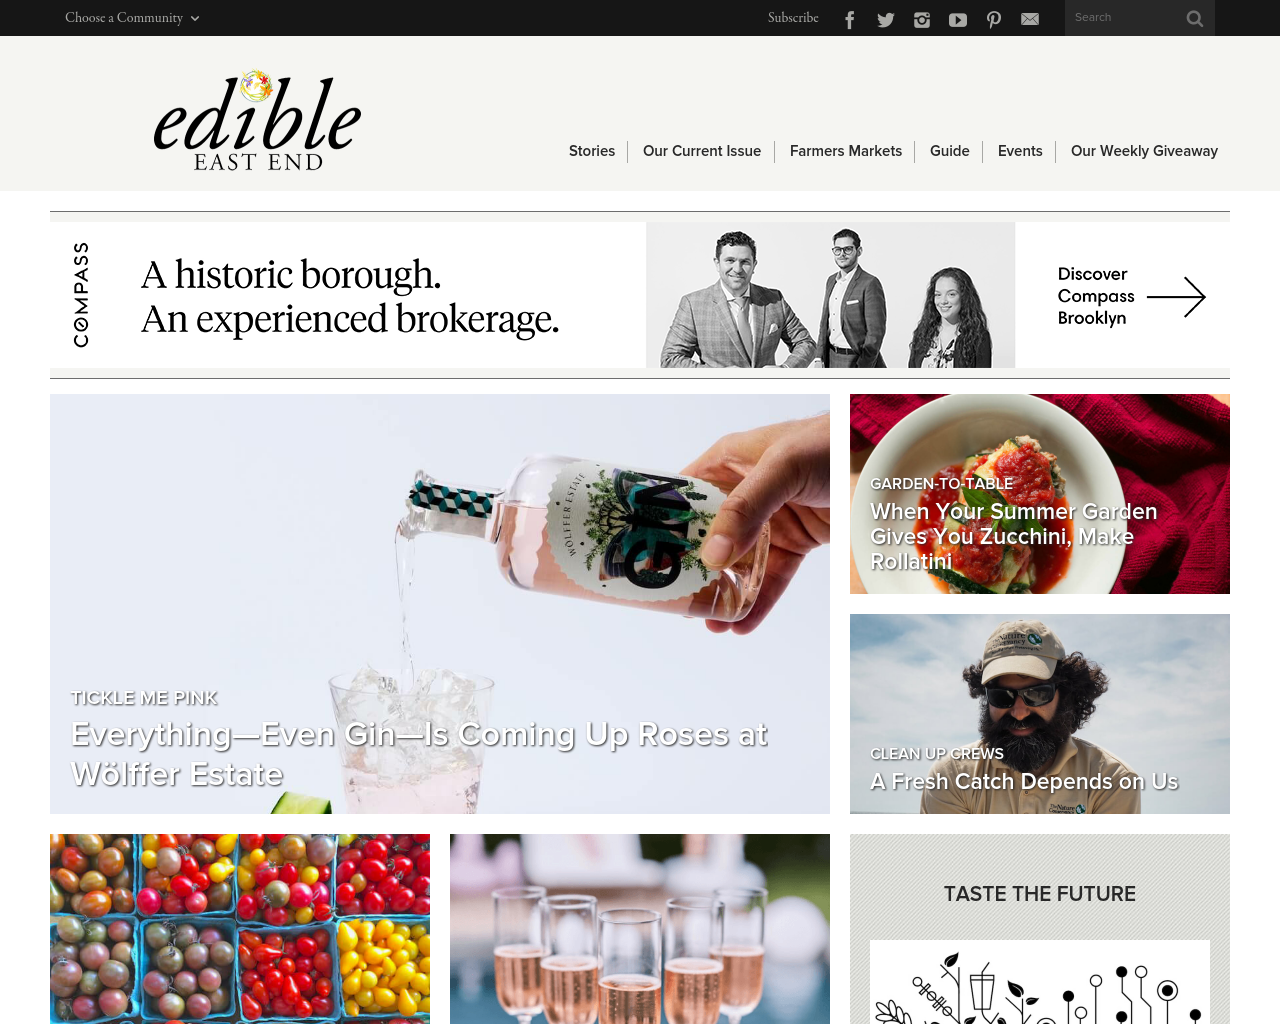 Edible-East-End-Advertising-Reviews-Pricing